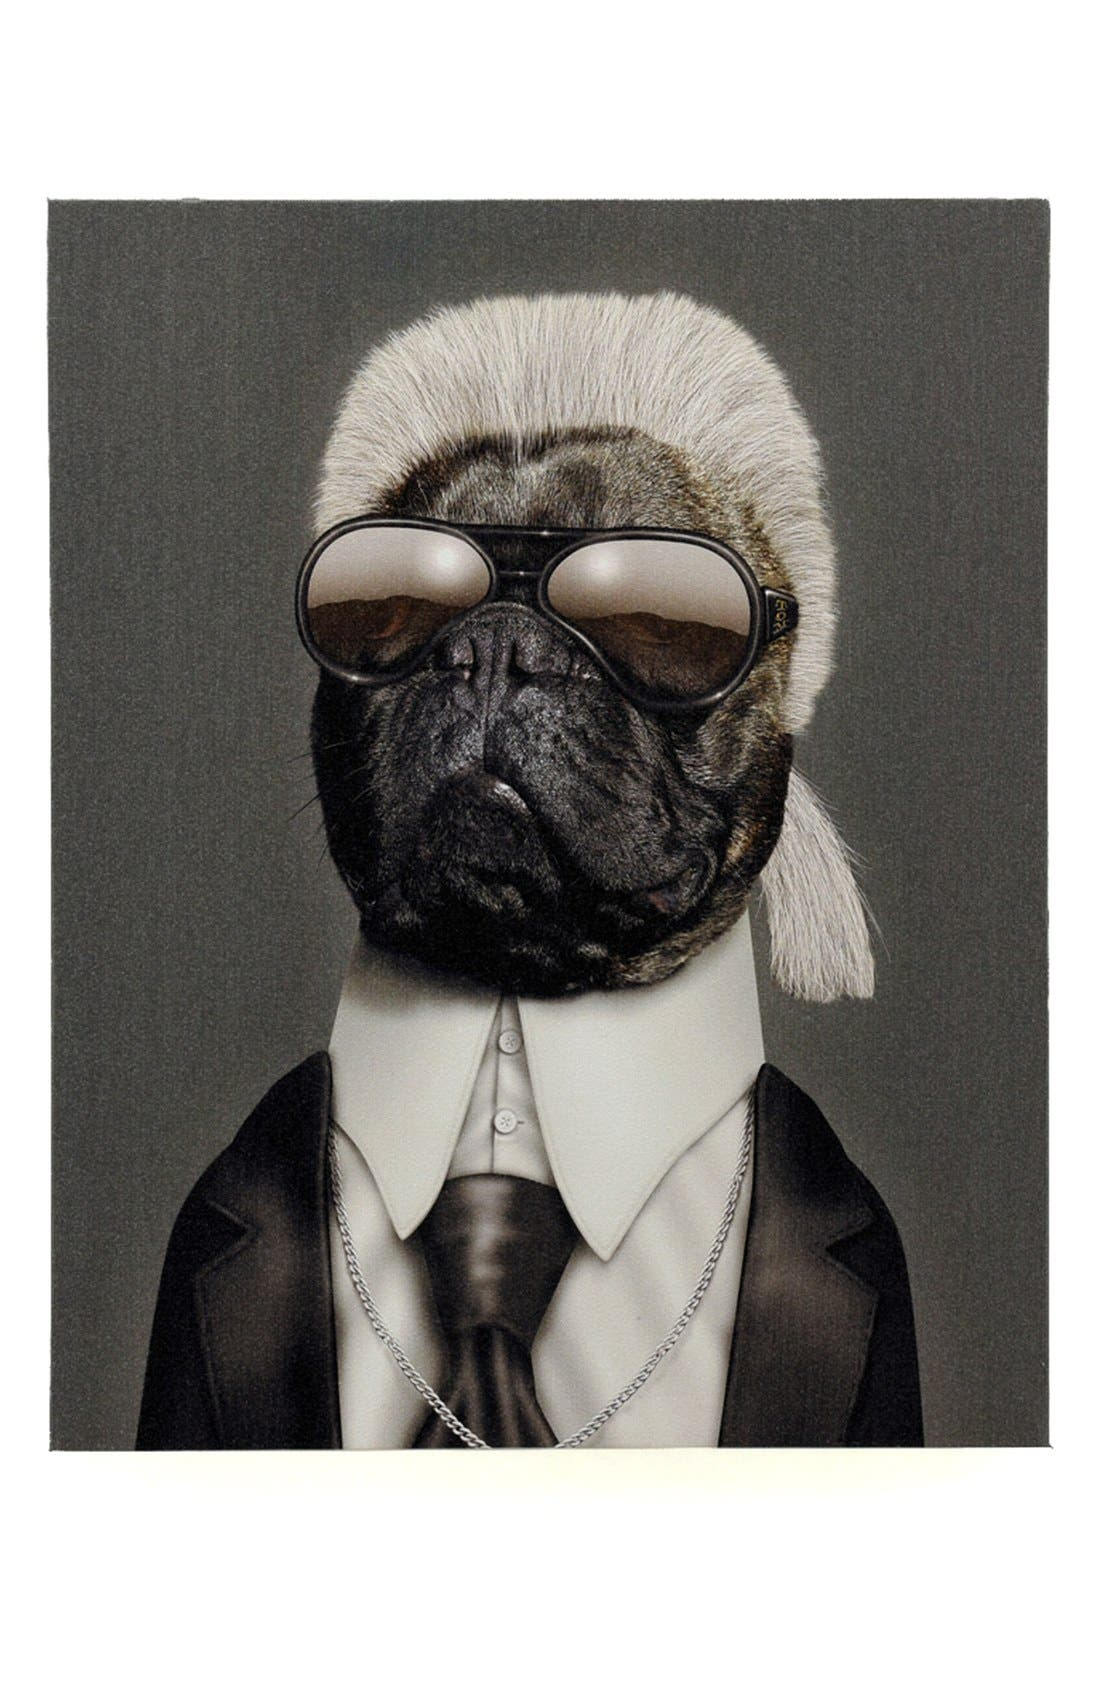 Alternate Image 1 Selected - Empire Art Direct 'Pets Rock™ - Fashion' Giclée Wall Art